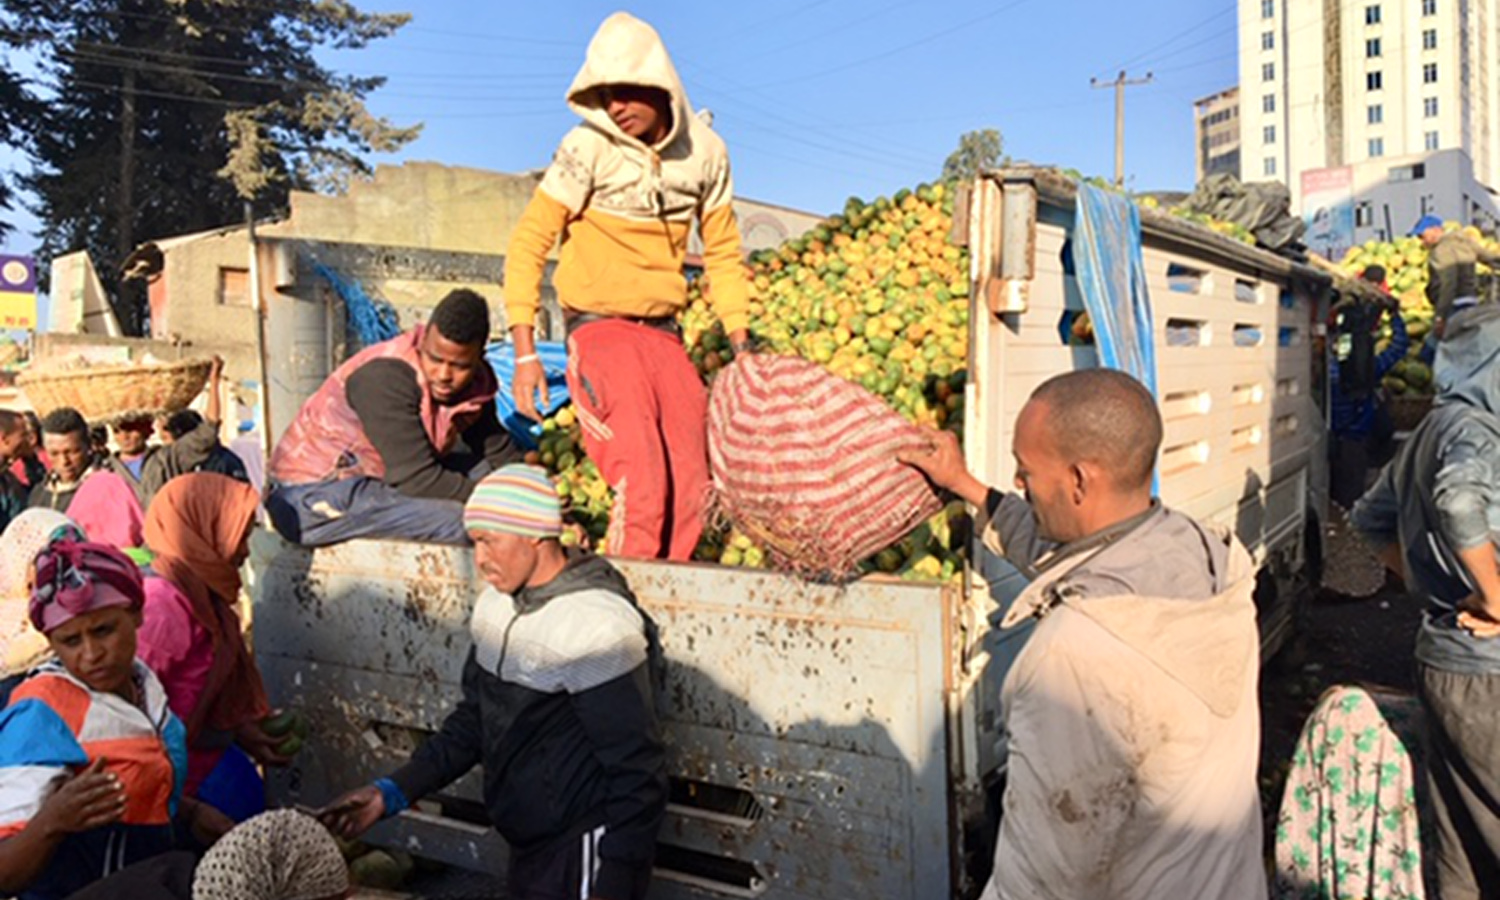 Food refrigeration in Ethiopia is mostly for exports, not feeding its own (Photograph courtesy of Peyton Fleming)